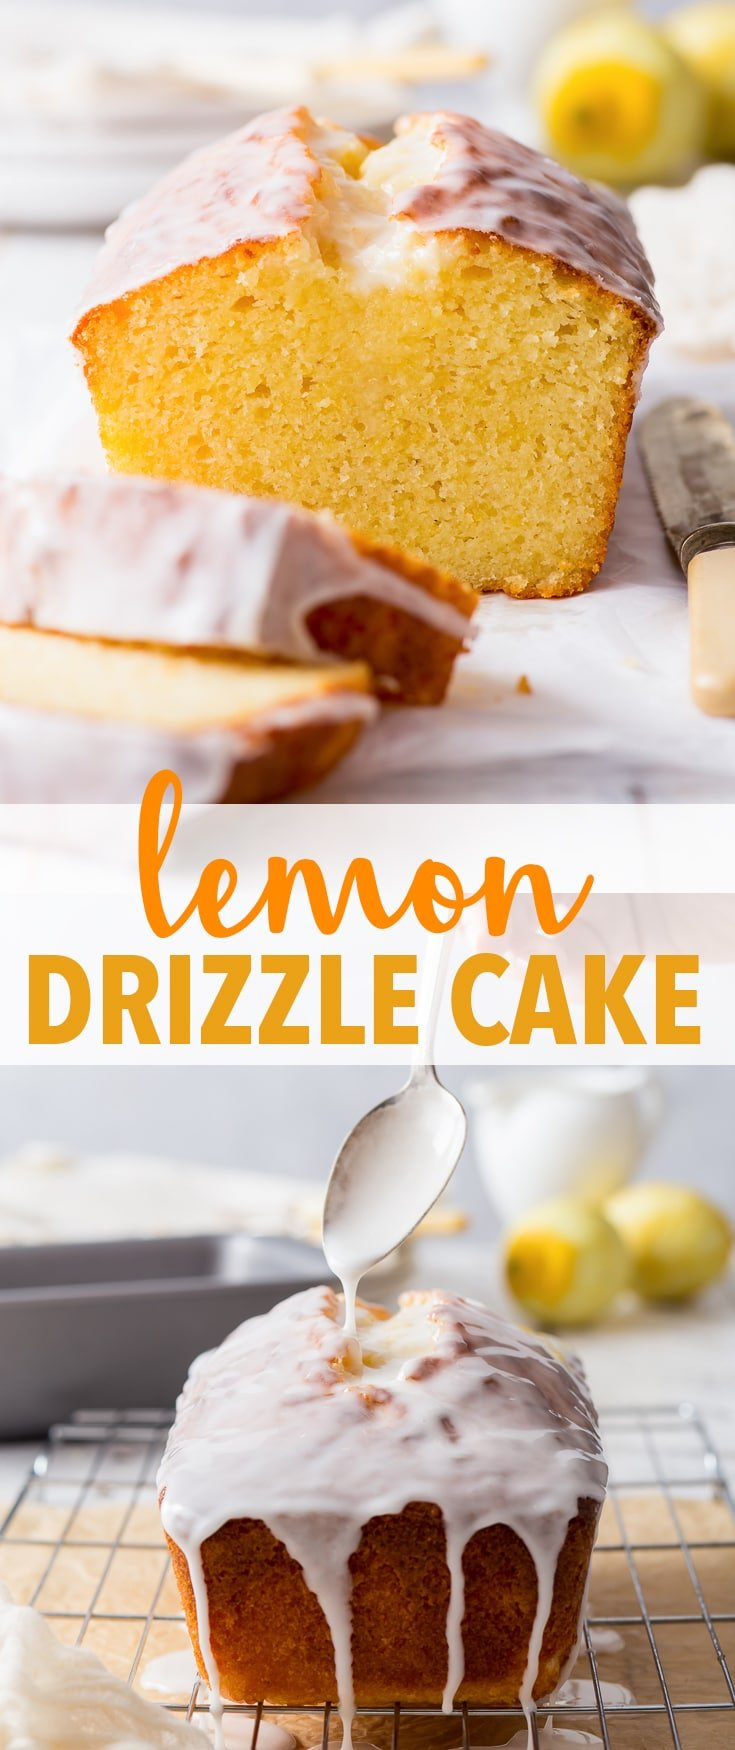 The Perfect Lemon Drizzle Cake (Gluten Free) - Intensely lemony, moist and with a delicate crumb, this lemon drizzle cake has it all. It's the perfect everyday dessert that's easy to prepare, and a joy to eat. Although, with how absolutely delicious it is, it would be welcome at any and all occasions. Lemon dessert. Easy dessert recipes. Gluten free desserts. Lemon cake recipe. Easy cake ideas. Gluten free cake. Pound cake. Lemon icing. Lemon frosting. #cake #recipes